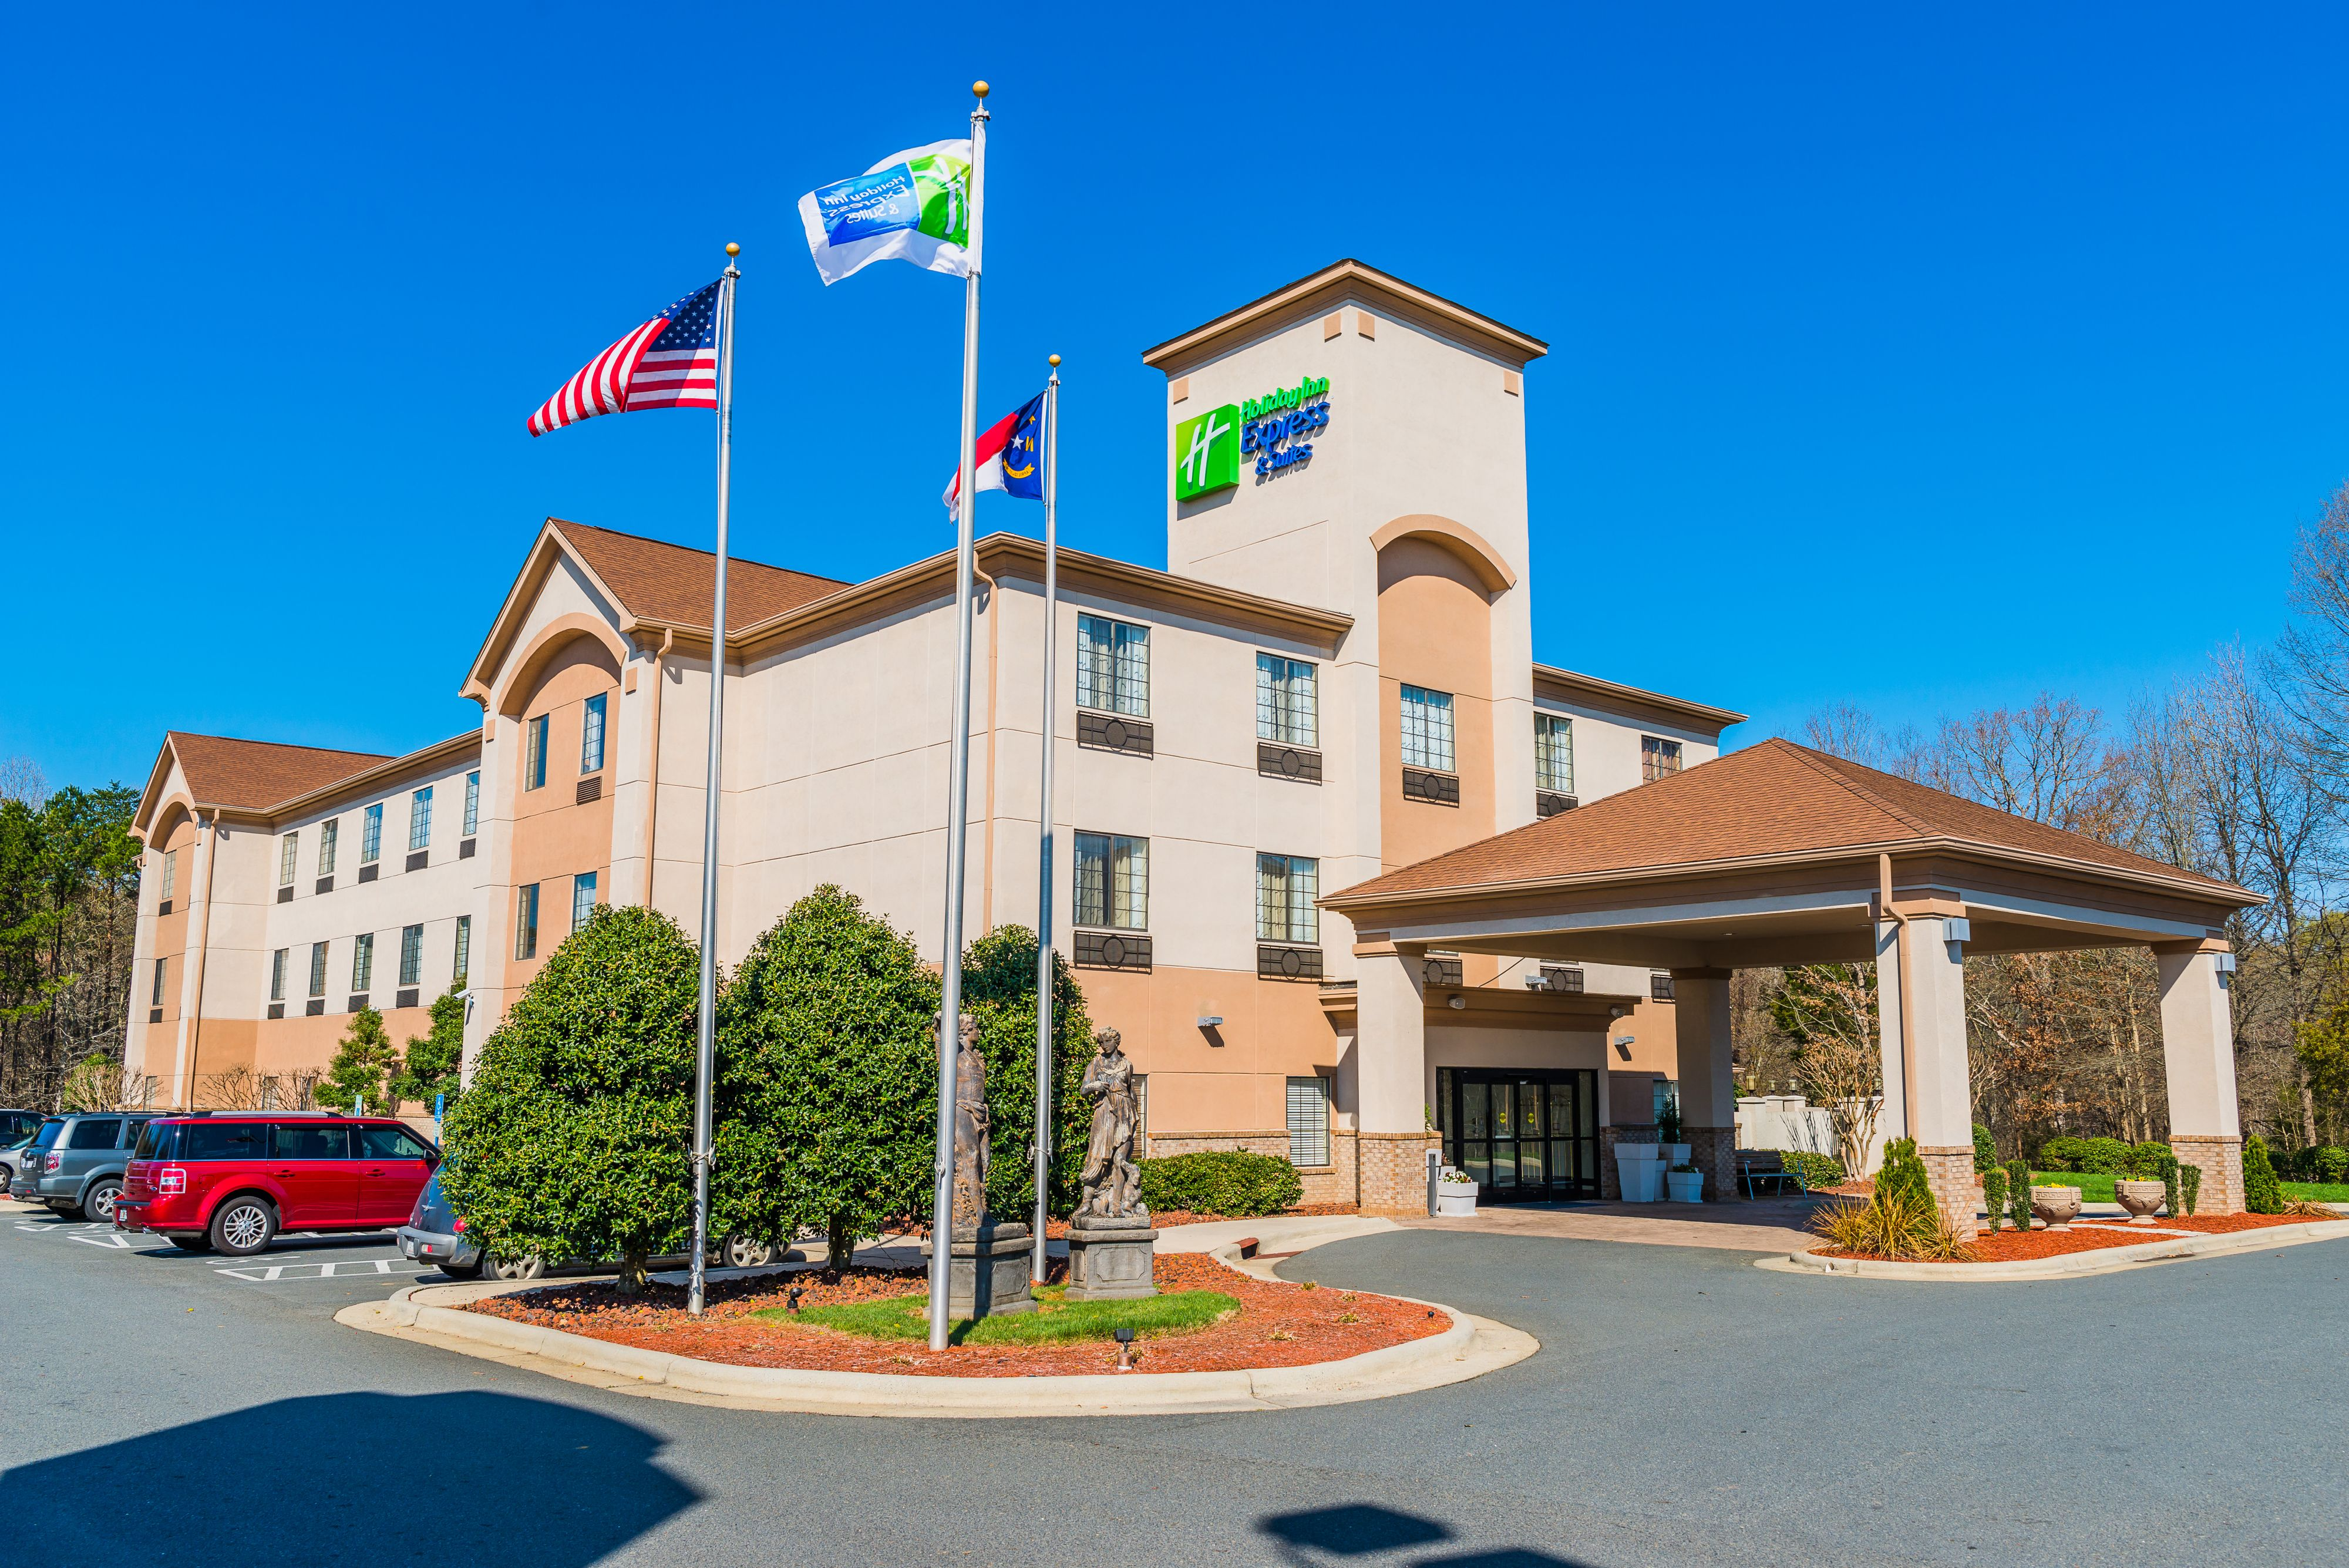 Holiday Inn Express Amp Suites Albany At 105 Opal Court N E